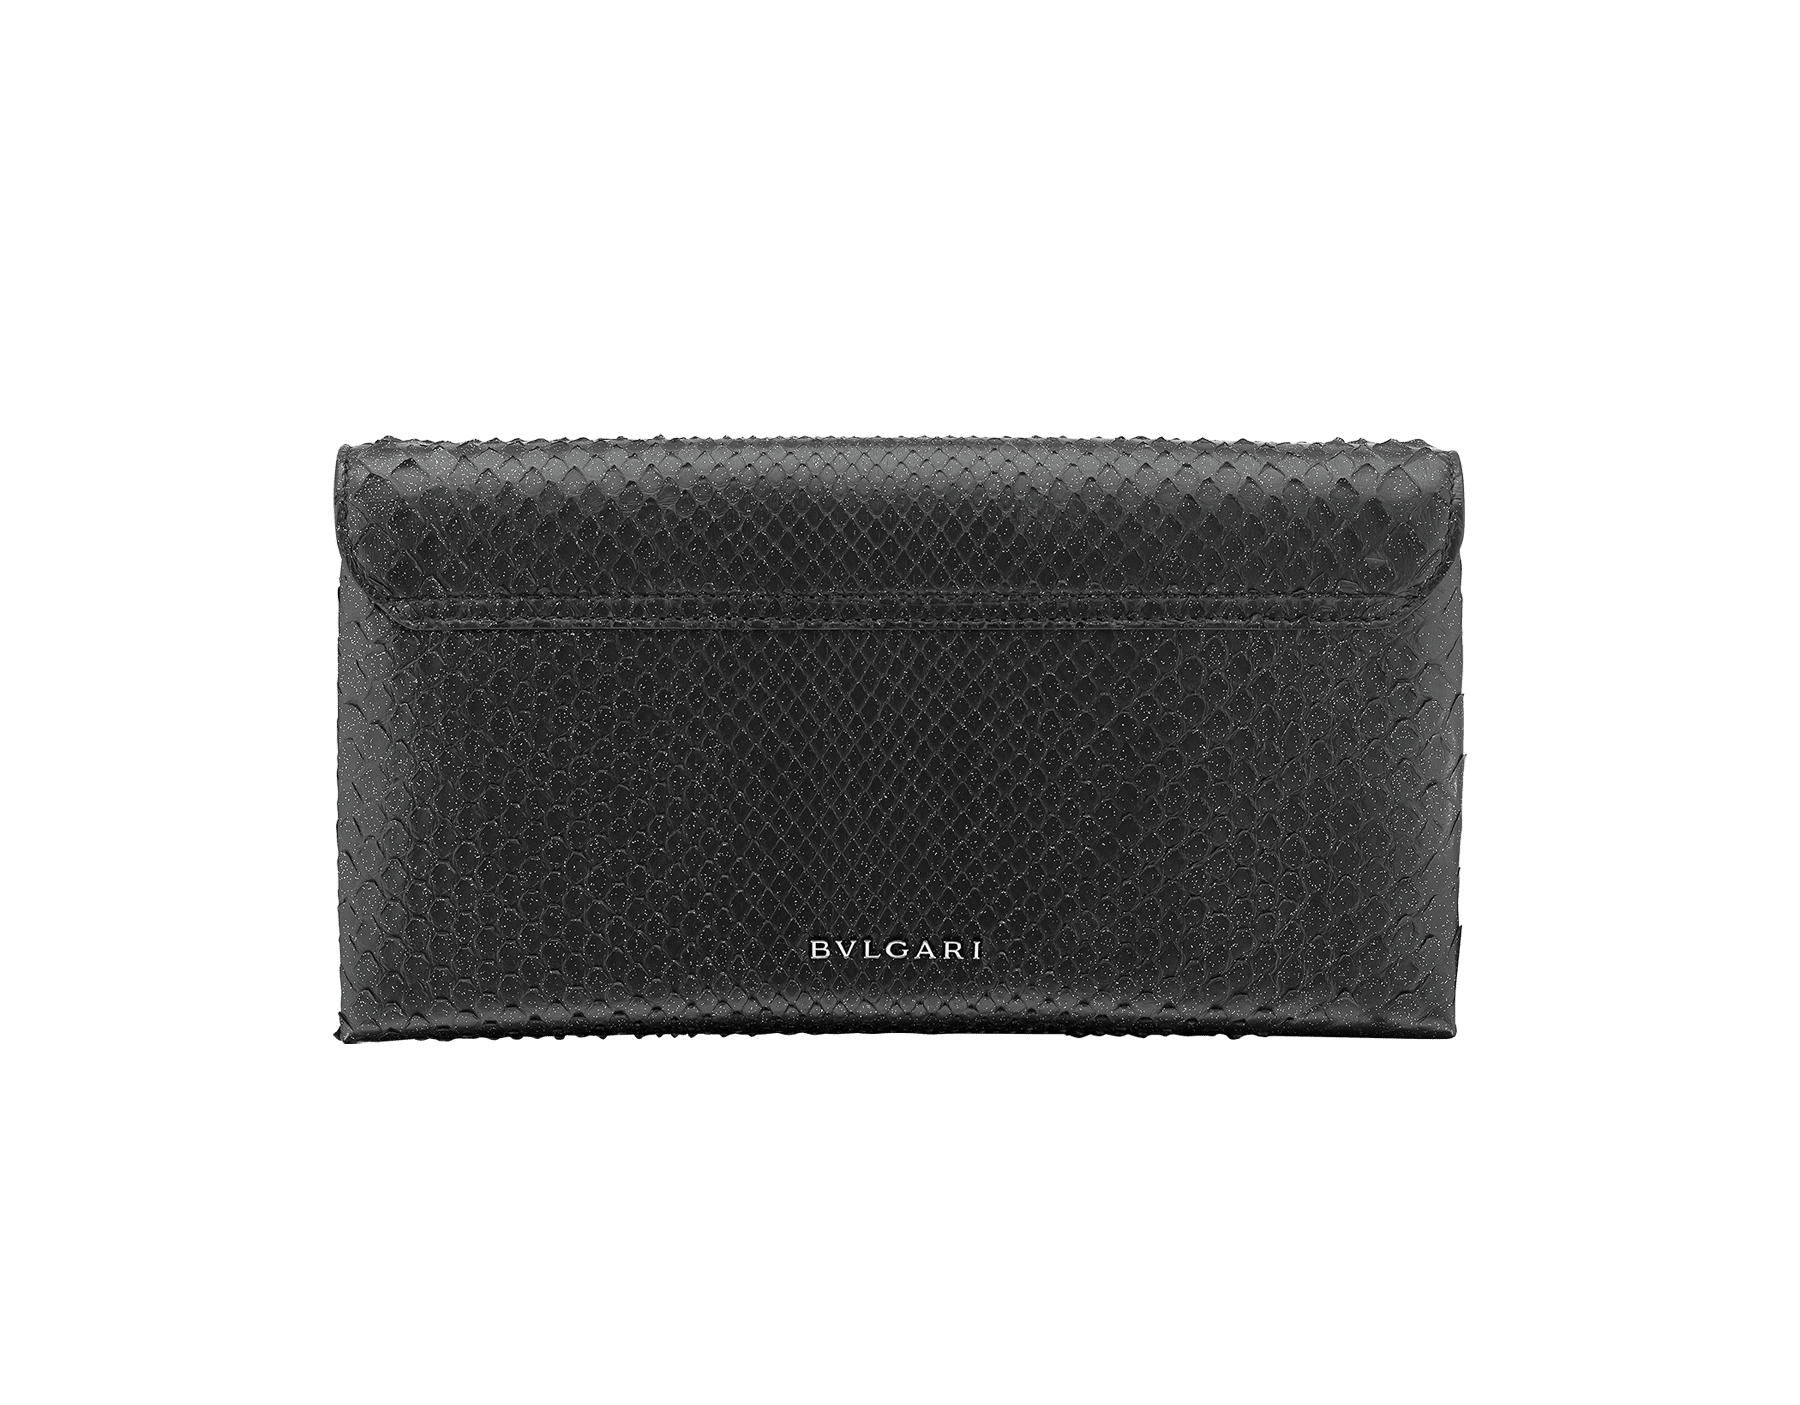 """""""Serpenti"""" evening clutch bag in black Diamond Glam python skin. Iconic snake head stud closure with tassel in dark ruthenium plated brass enriched with black shiny enamel and black onyx eyes. 289041 image 3"""